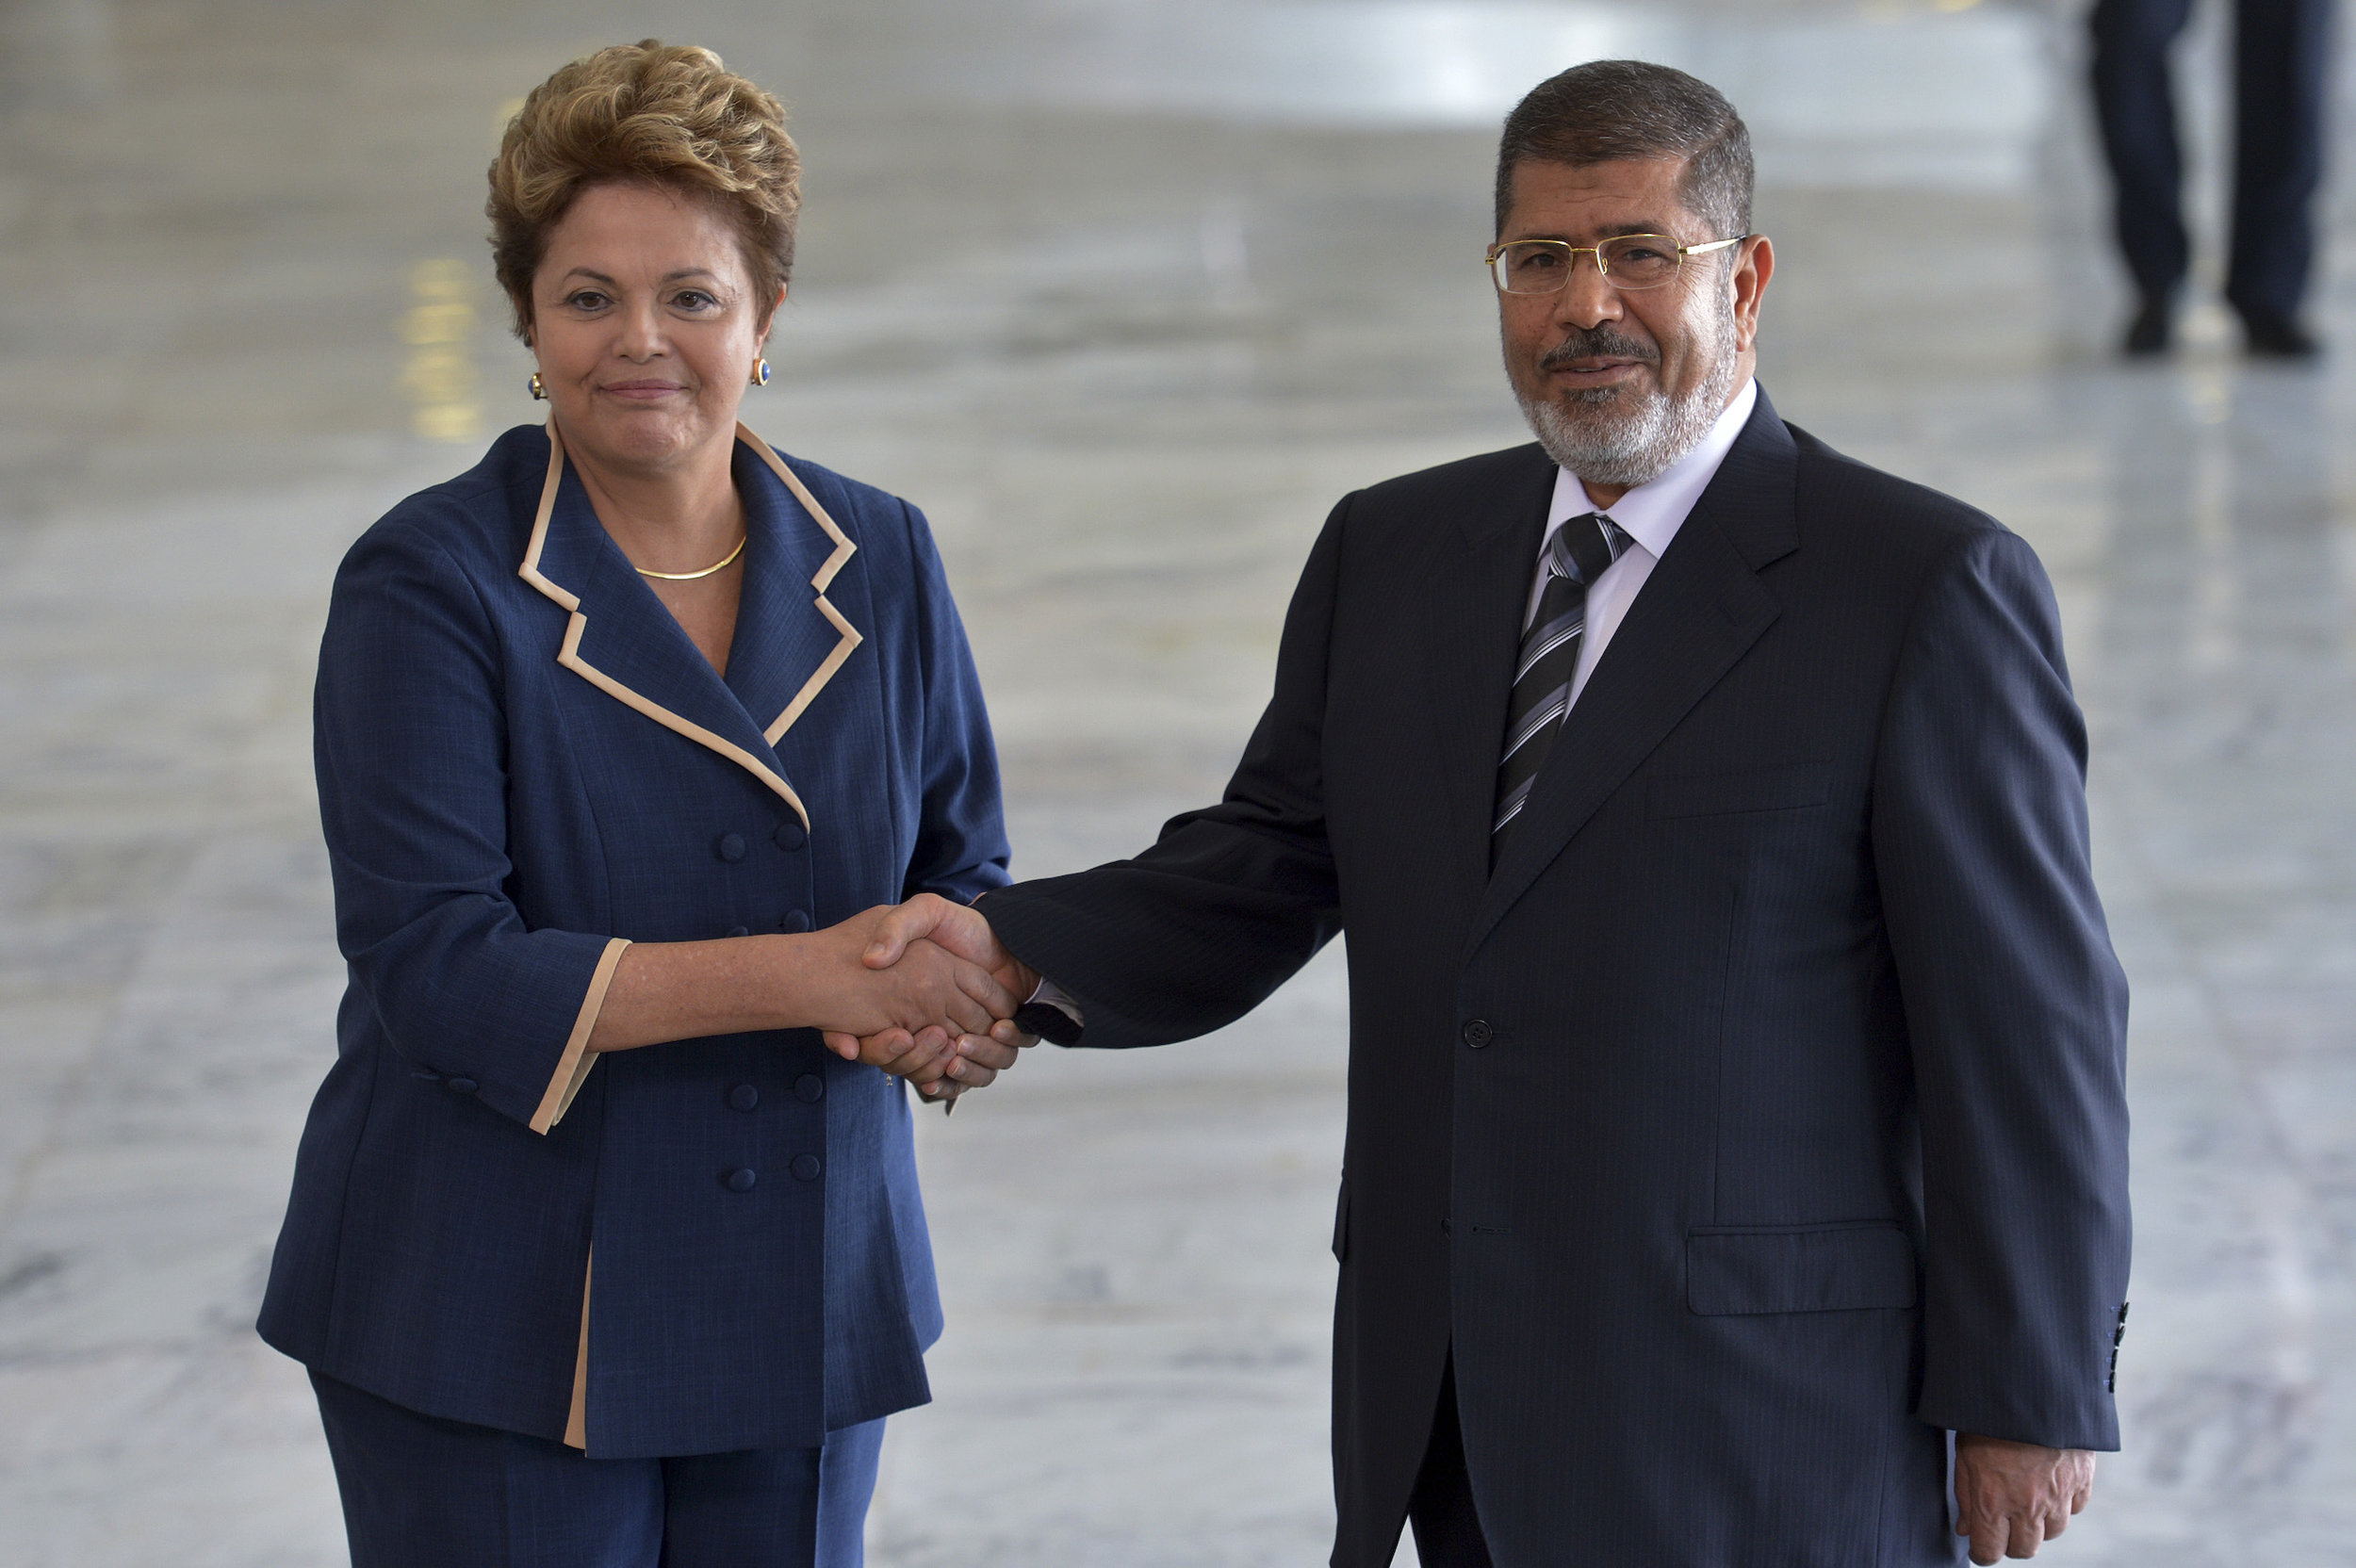 The late Mohamed Morsi, Egypt's fifth president, together with Brazil's former president Dilma Roussef. | Credit:  Agência Brasil